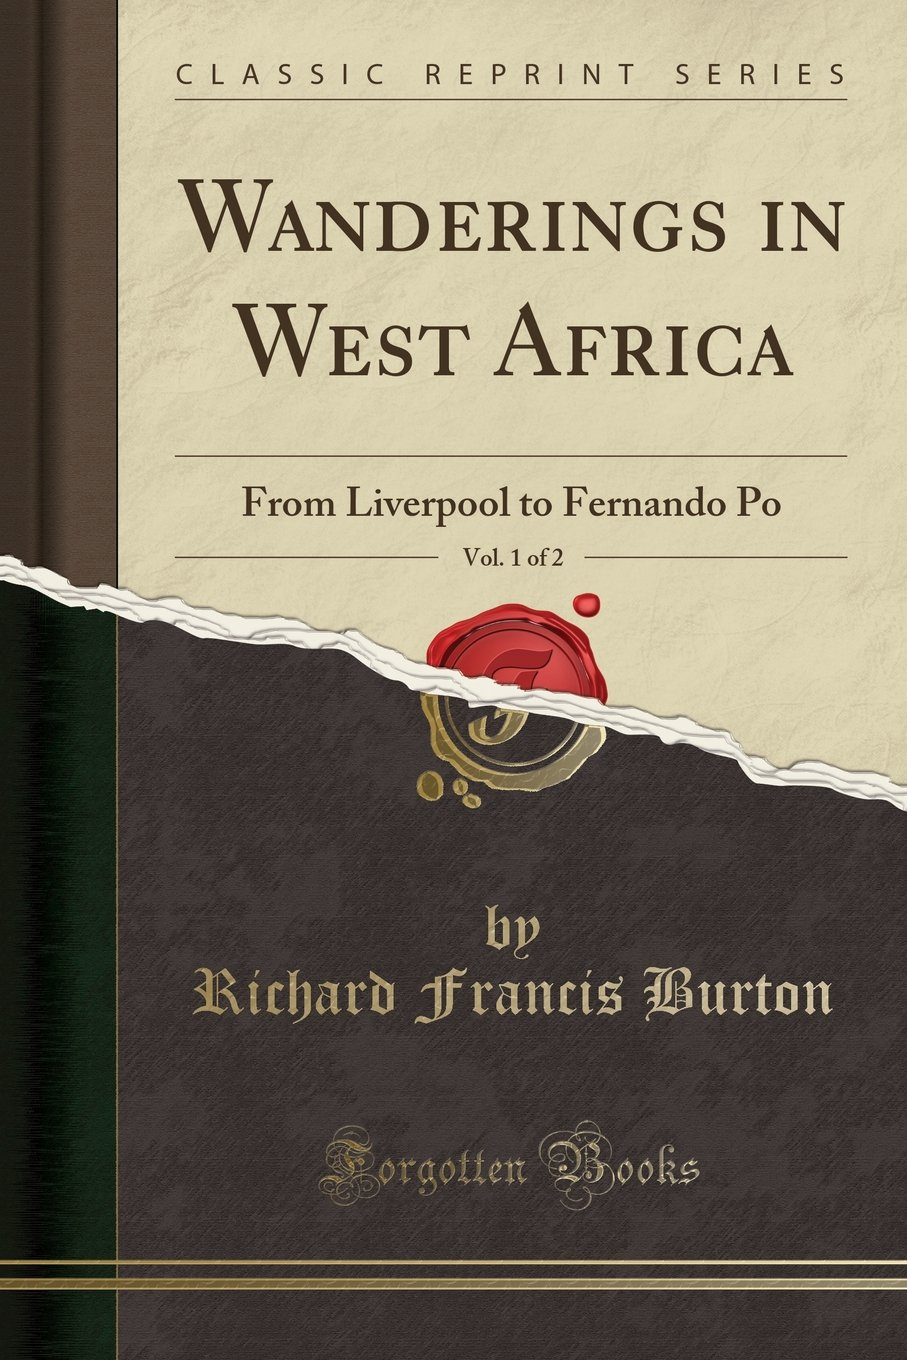 Download Wanderings in West Africa, Vol. 1 of 2: From Liverpool to Fernando Po (Classic Reprint) PDF ePub fb2 book